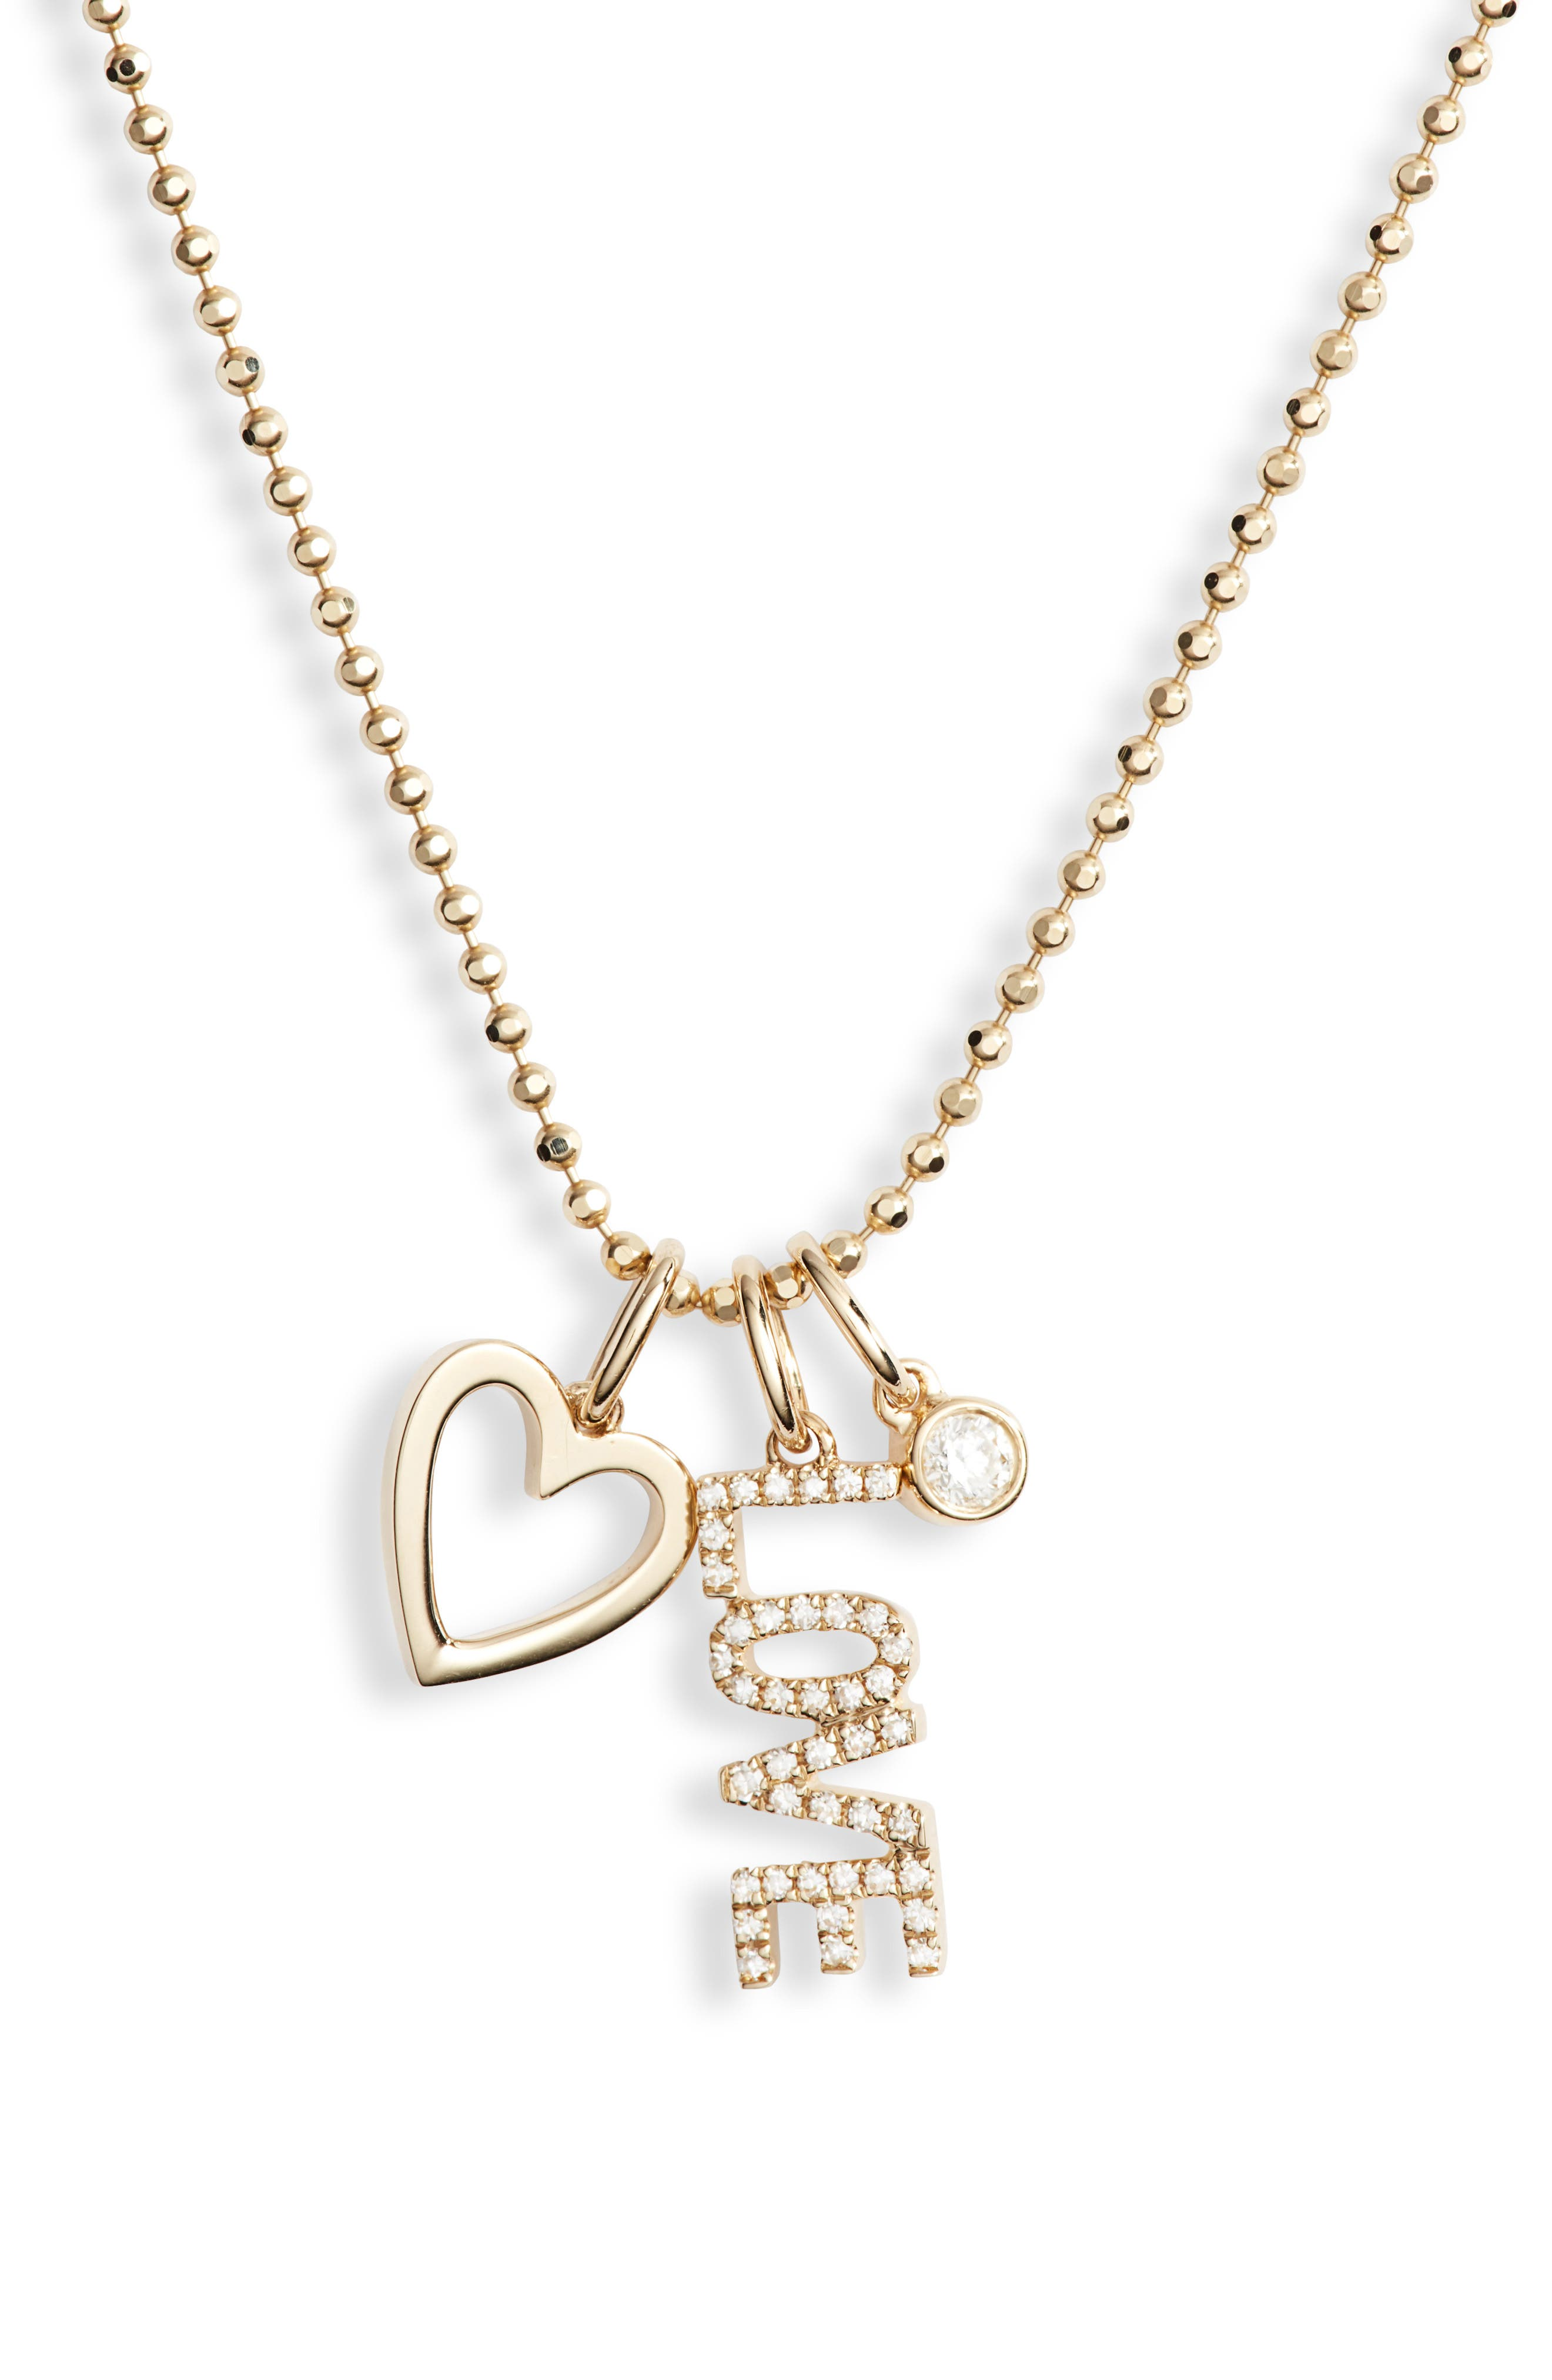 Diamond Love Charm Necklace,                             Alternate thumbnail 2, color,                             YELLOW GOLD/ DIAMOND